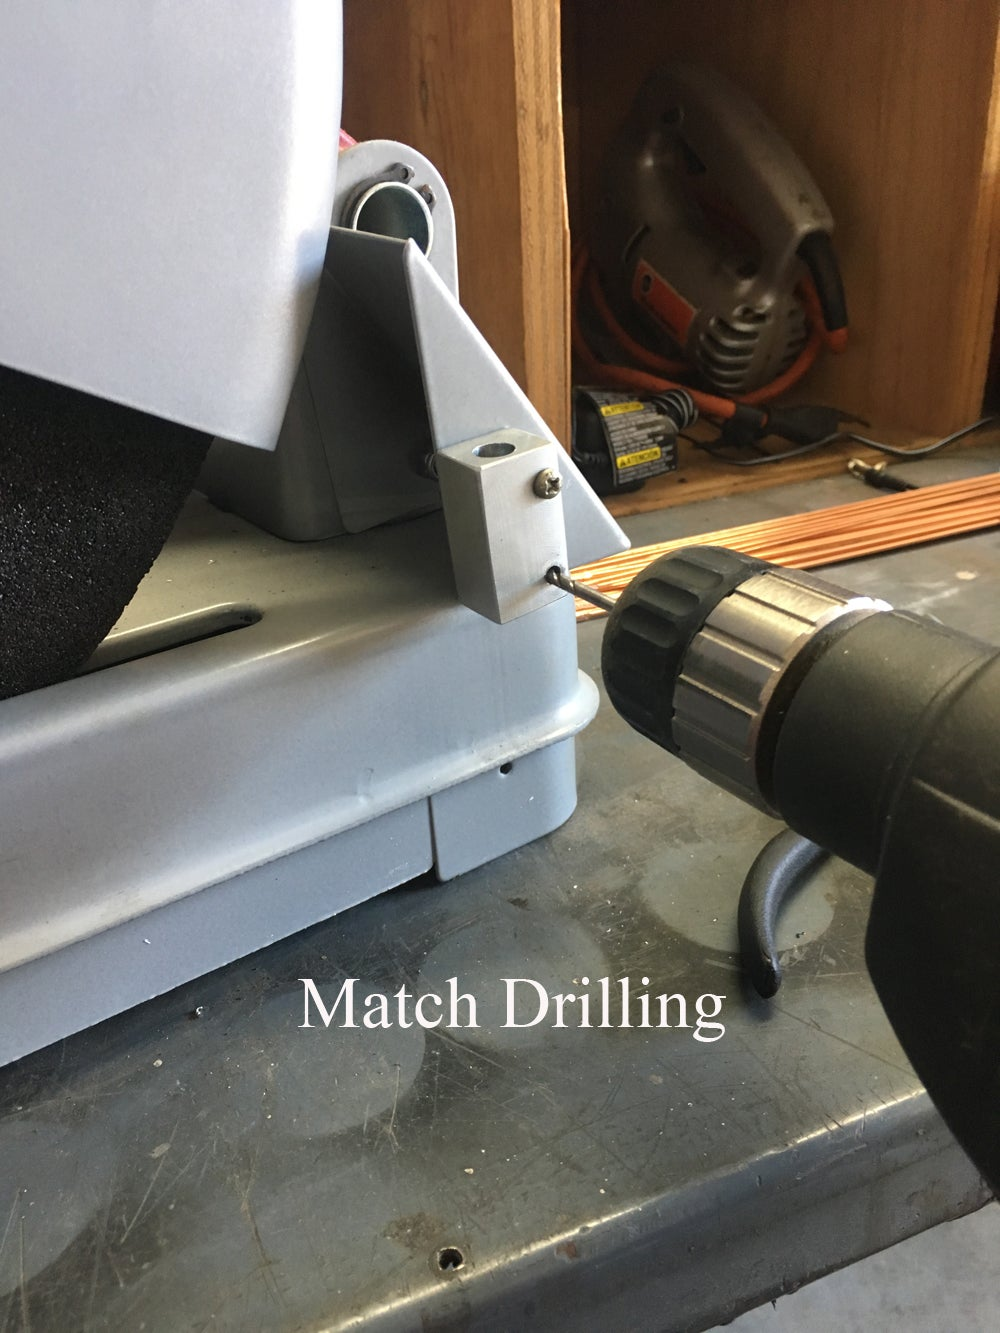 Match Drilling the Screw Holes in the Saw Body